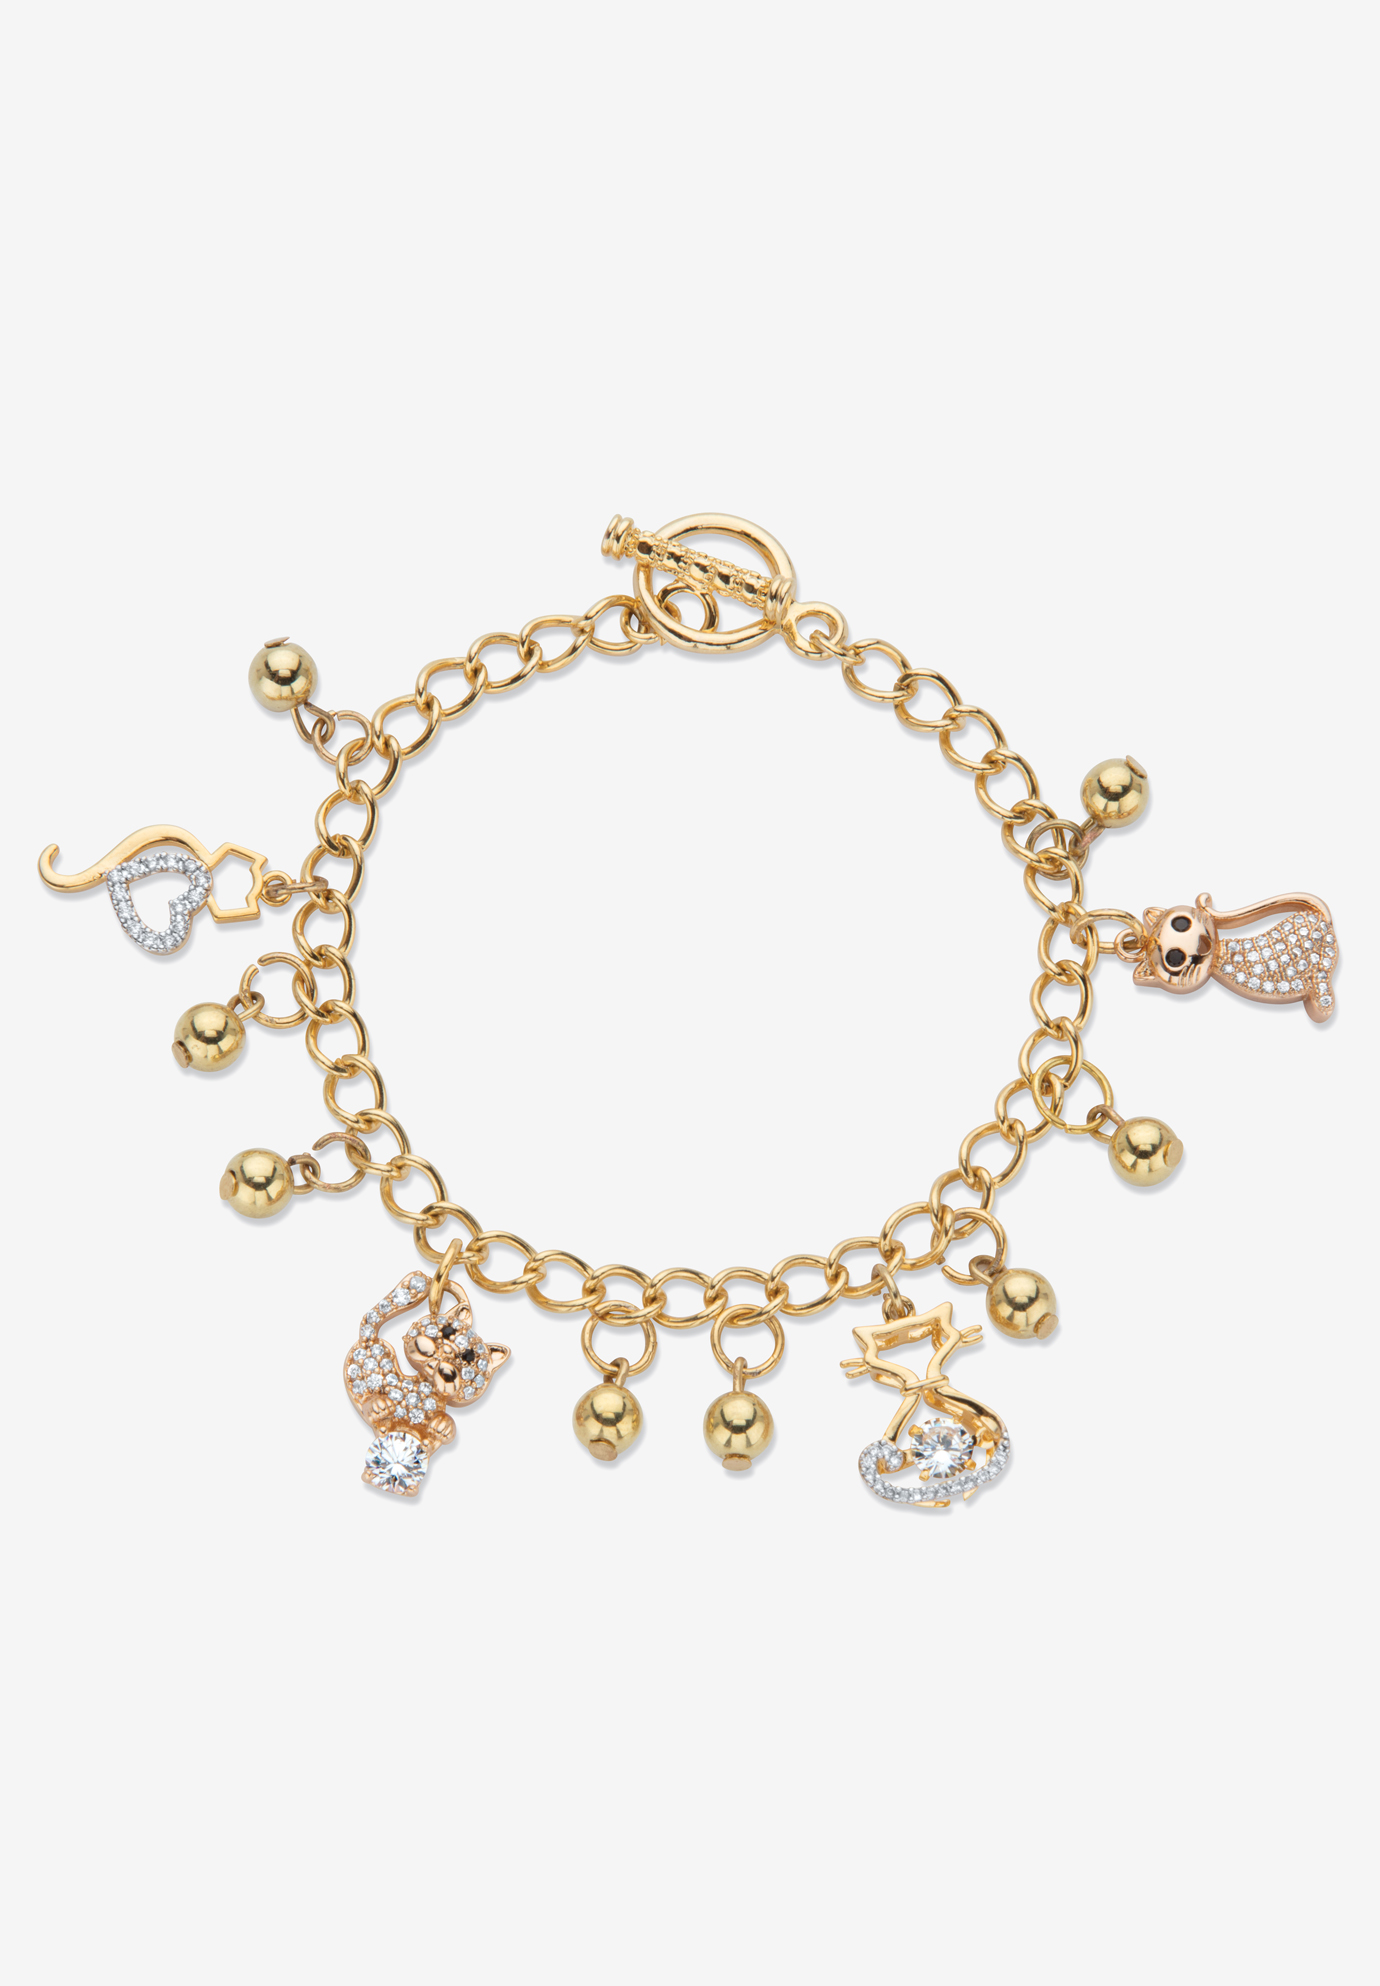 Gold Tone Round Crystal Cat Charm Bracelet, 7.5 inches, CRYSTAL